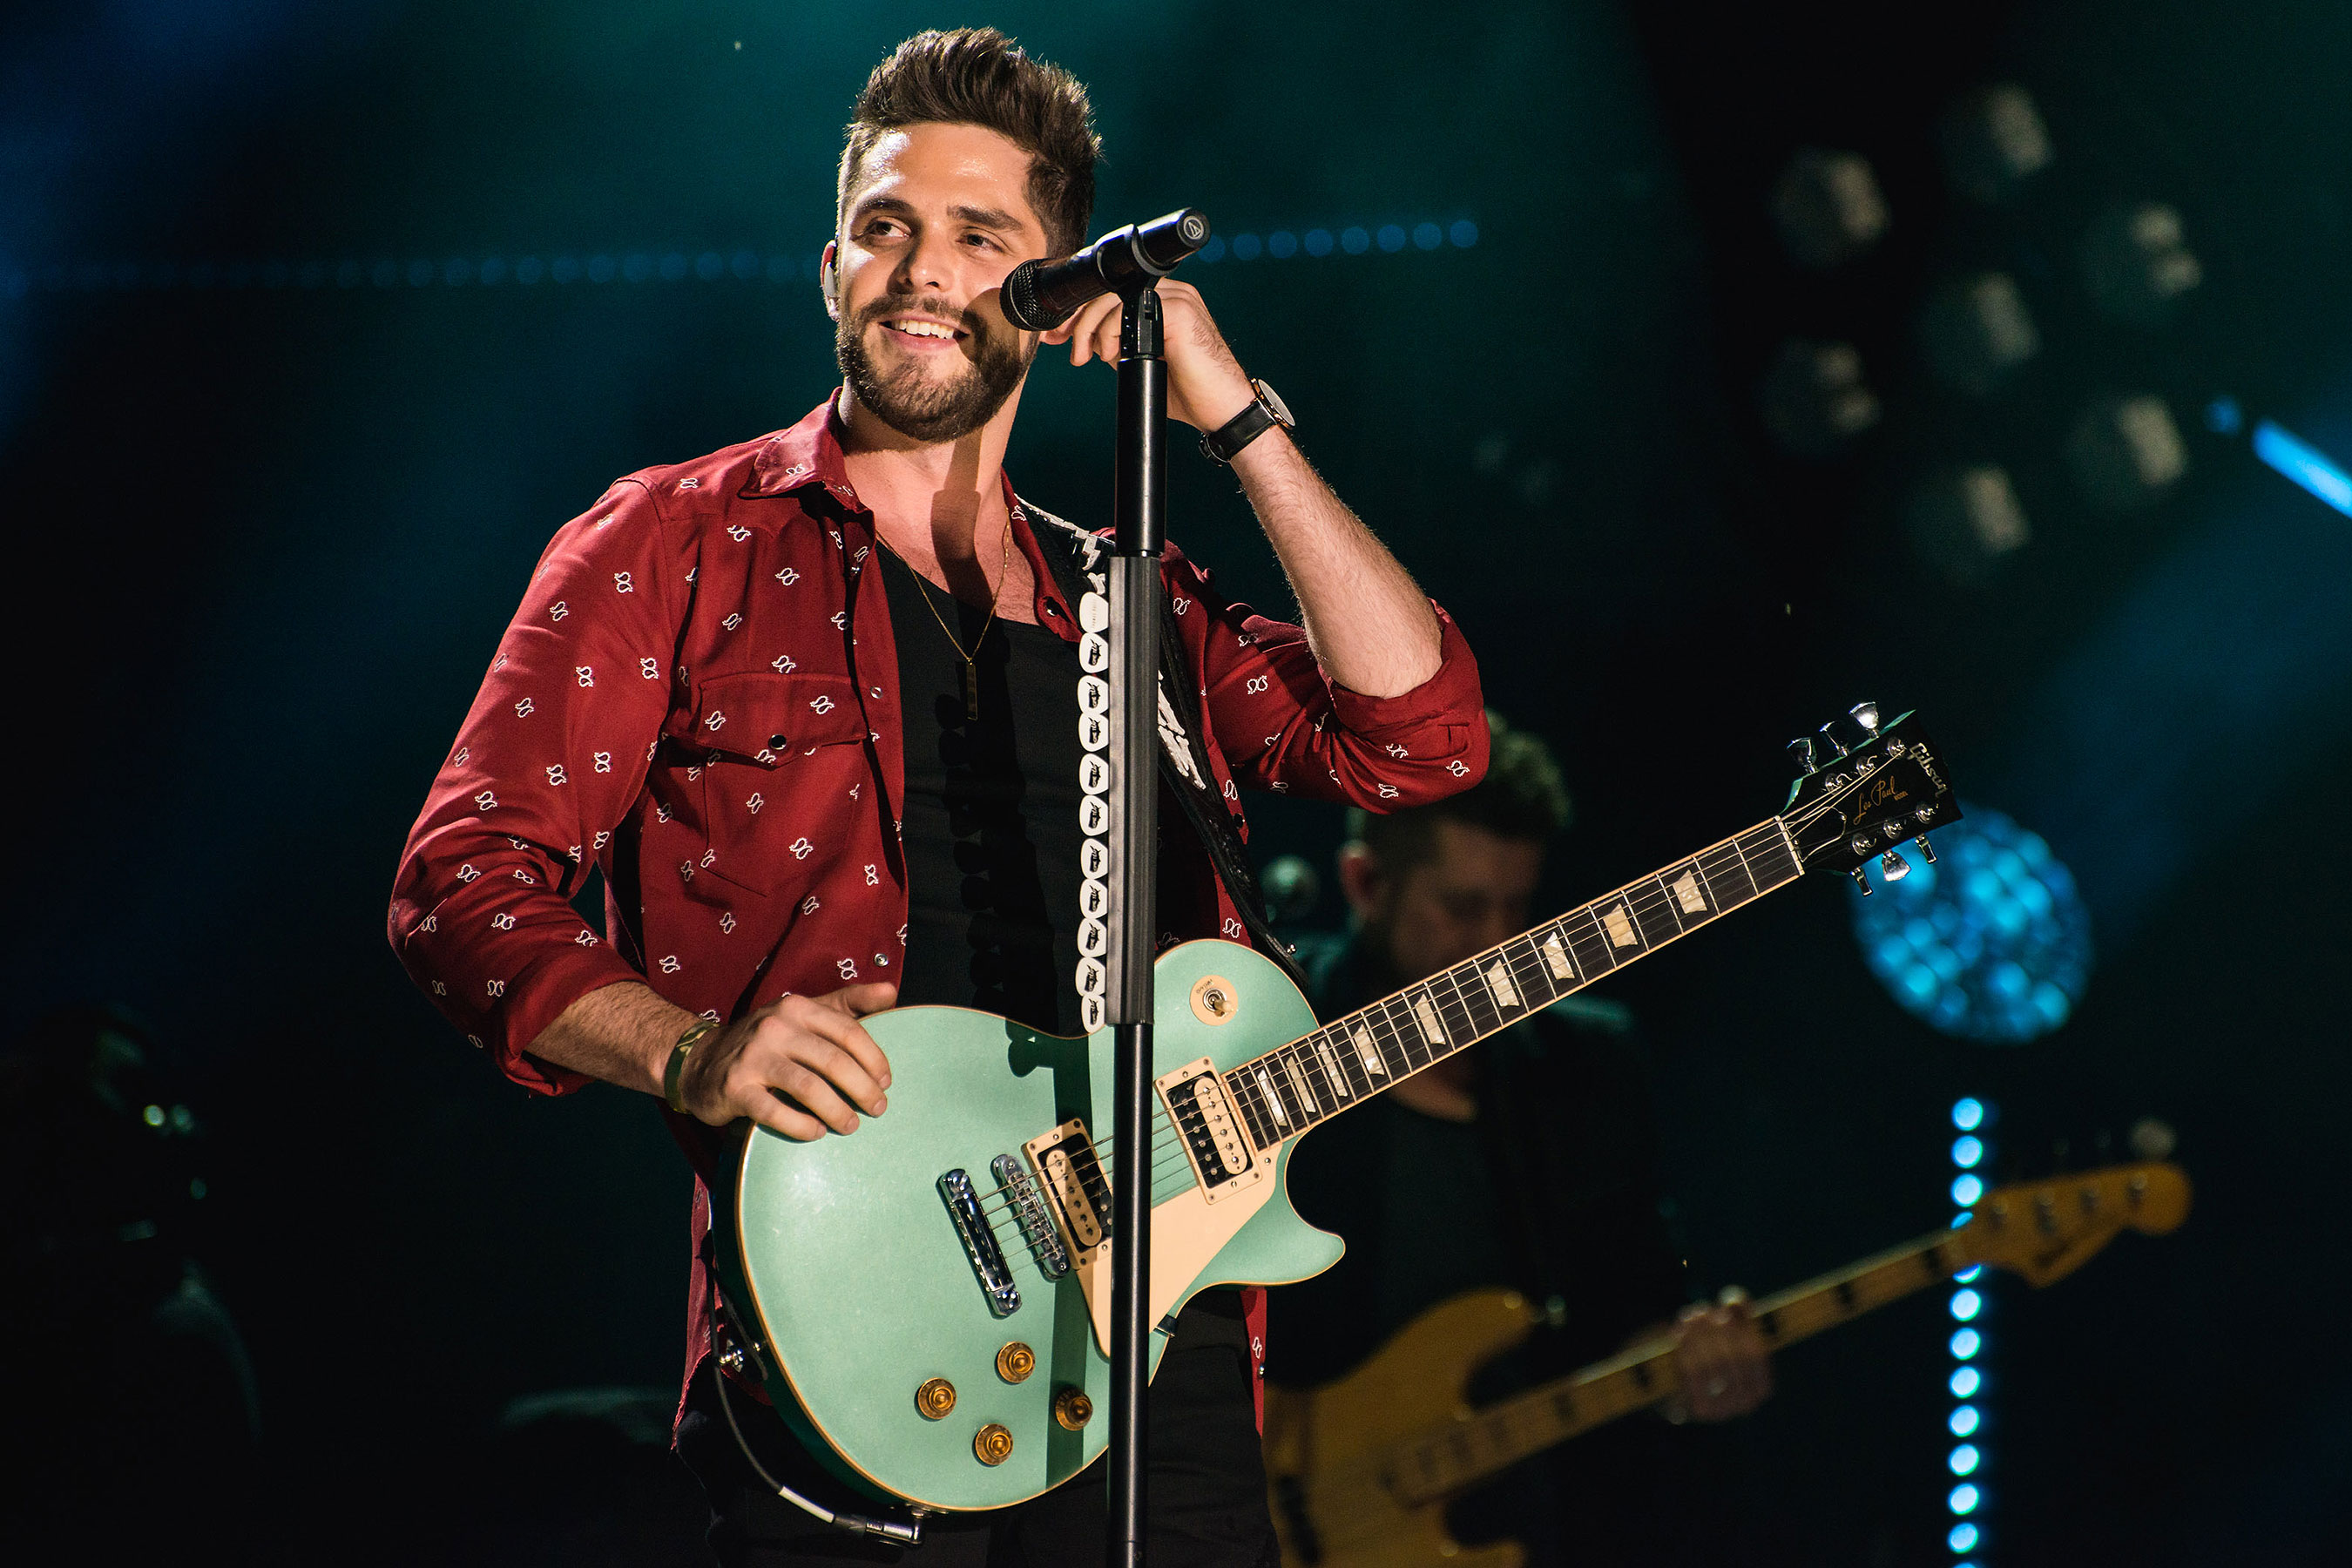 Thomas Rhett, Dustin Lynch, Russell Dickerson & Rhett Akins at Budweiser Stage